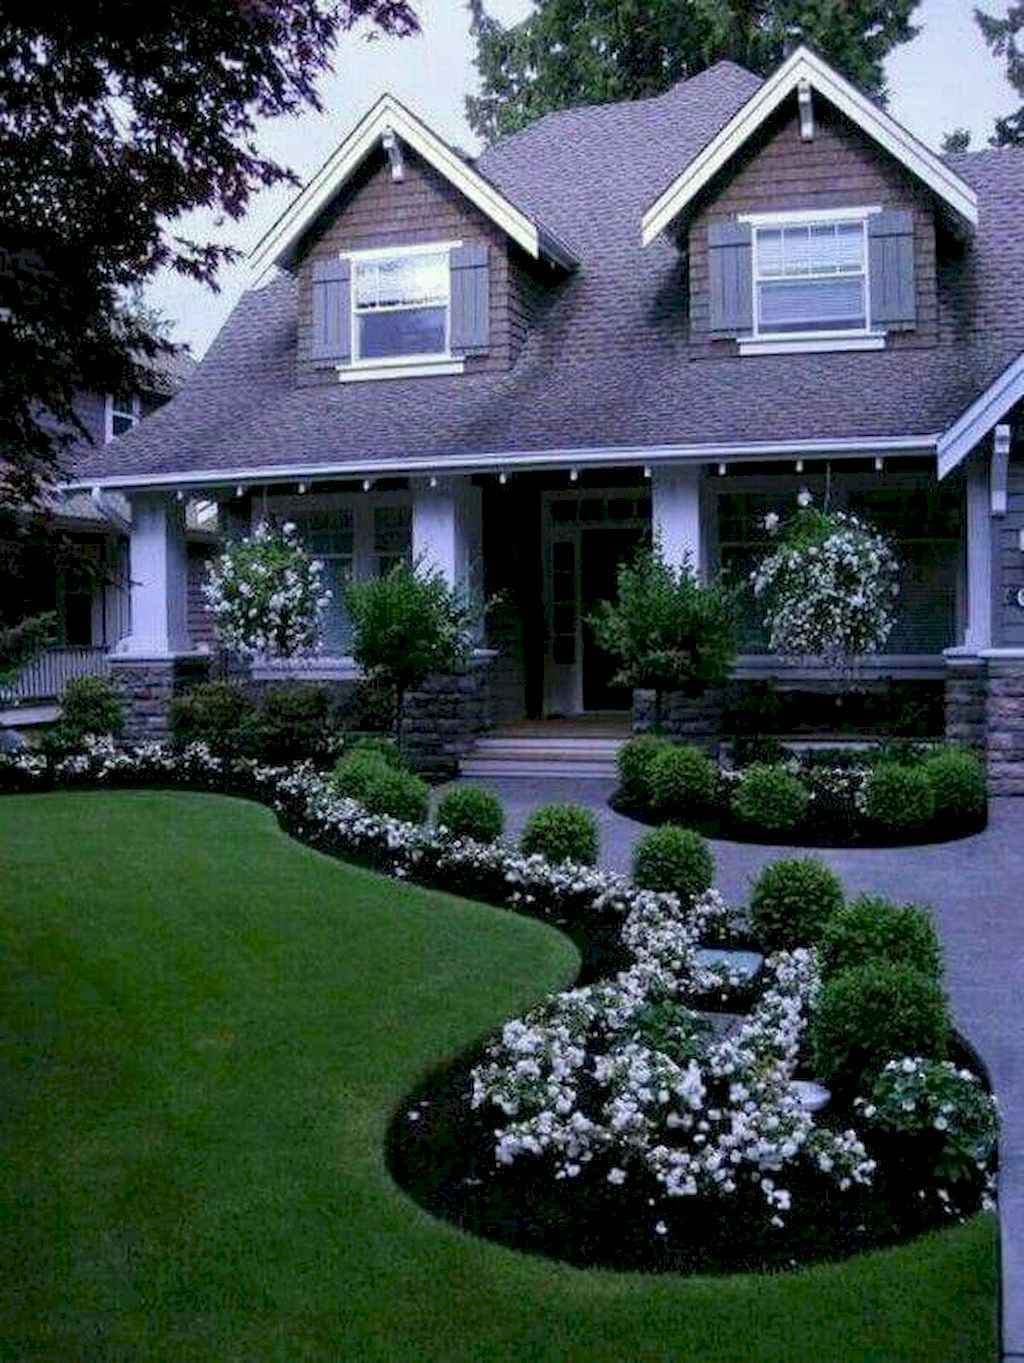 35 Beautiful Frontyard Landscaping Design Ideas and Remodel (8)